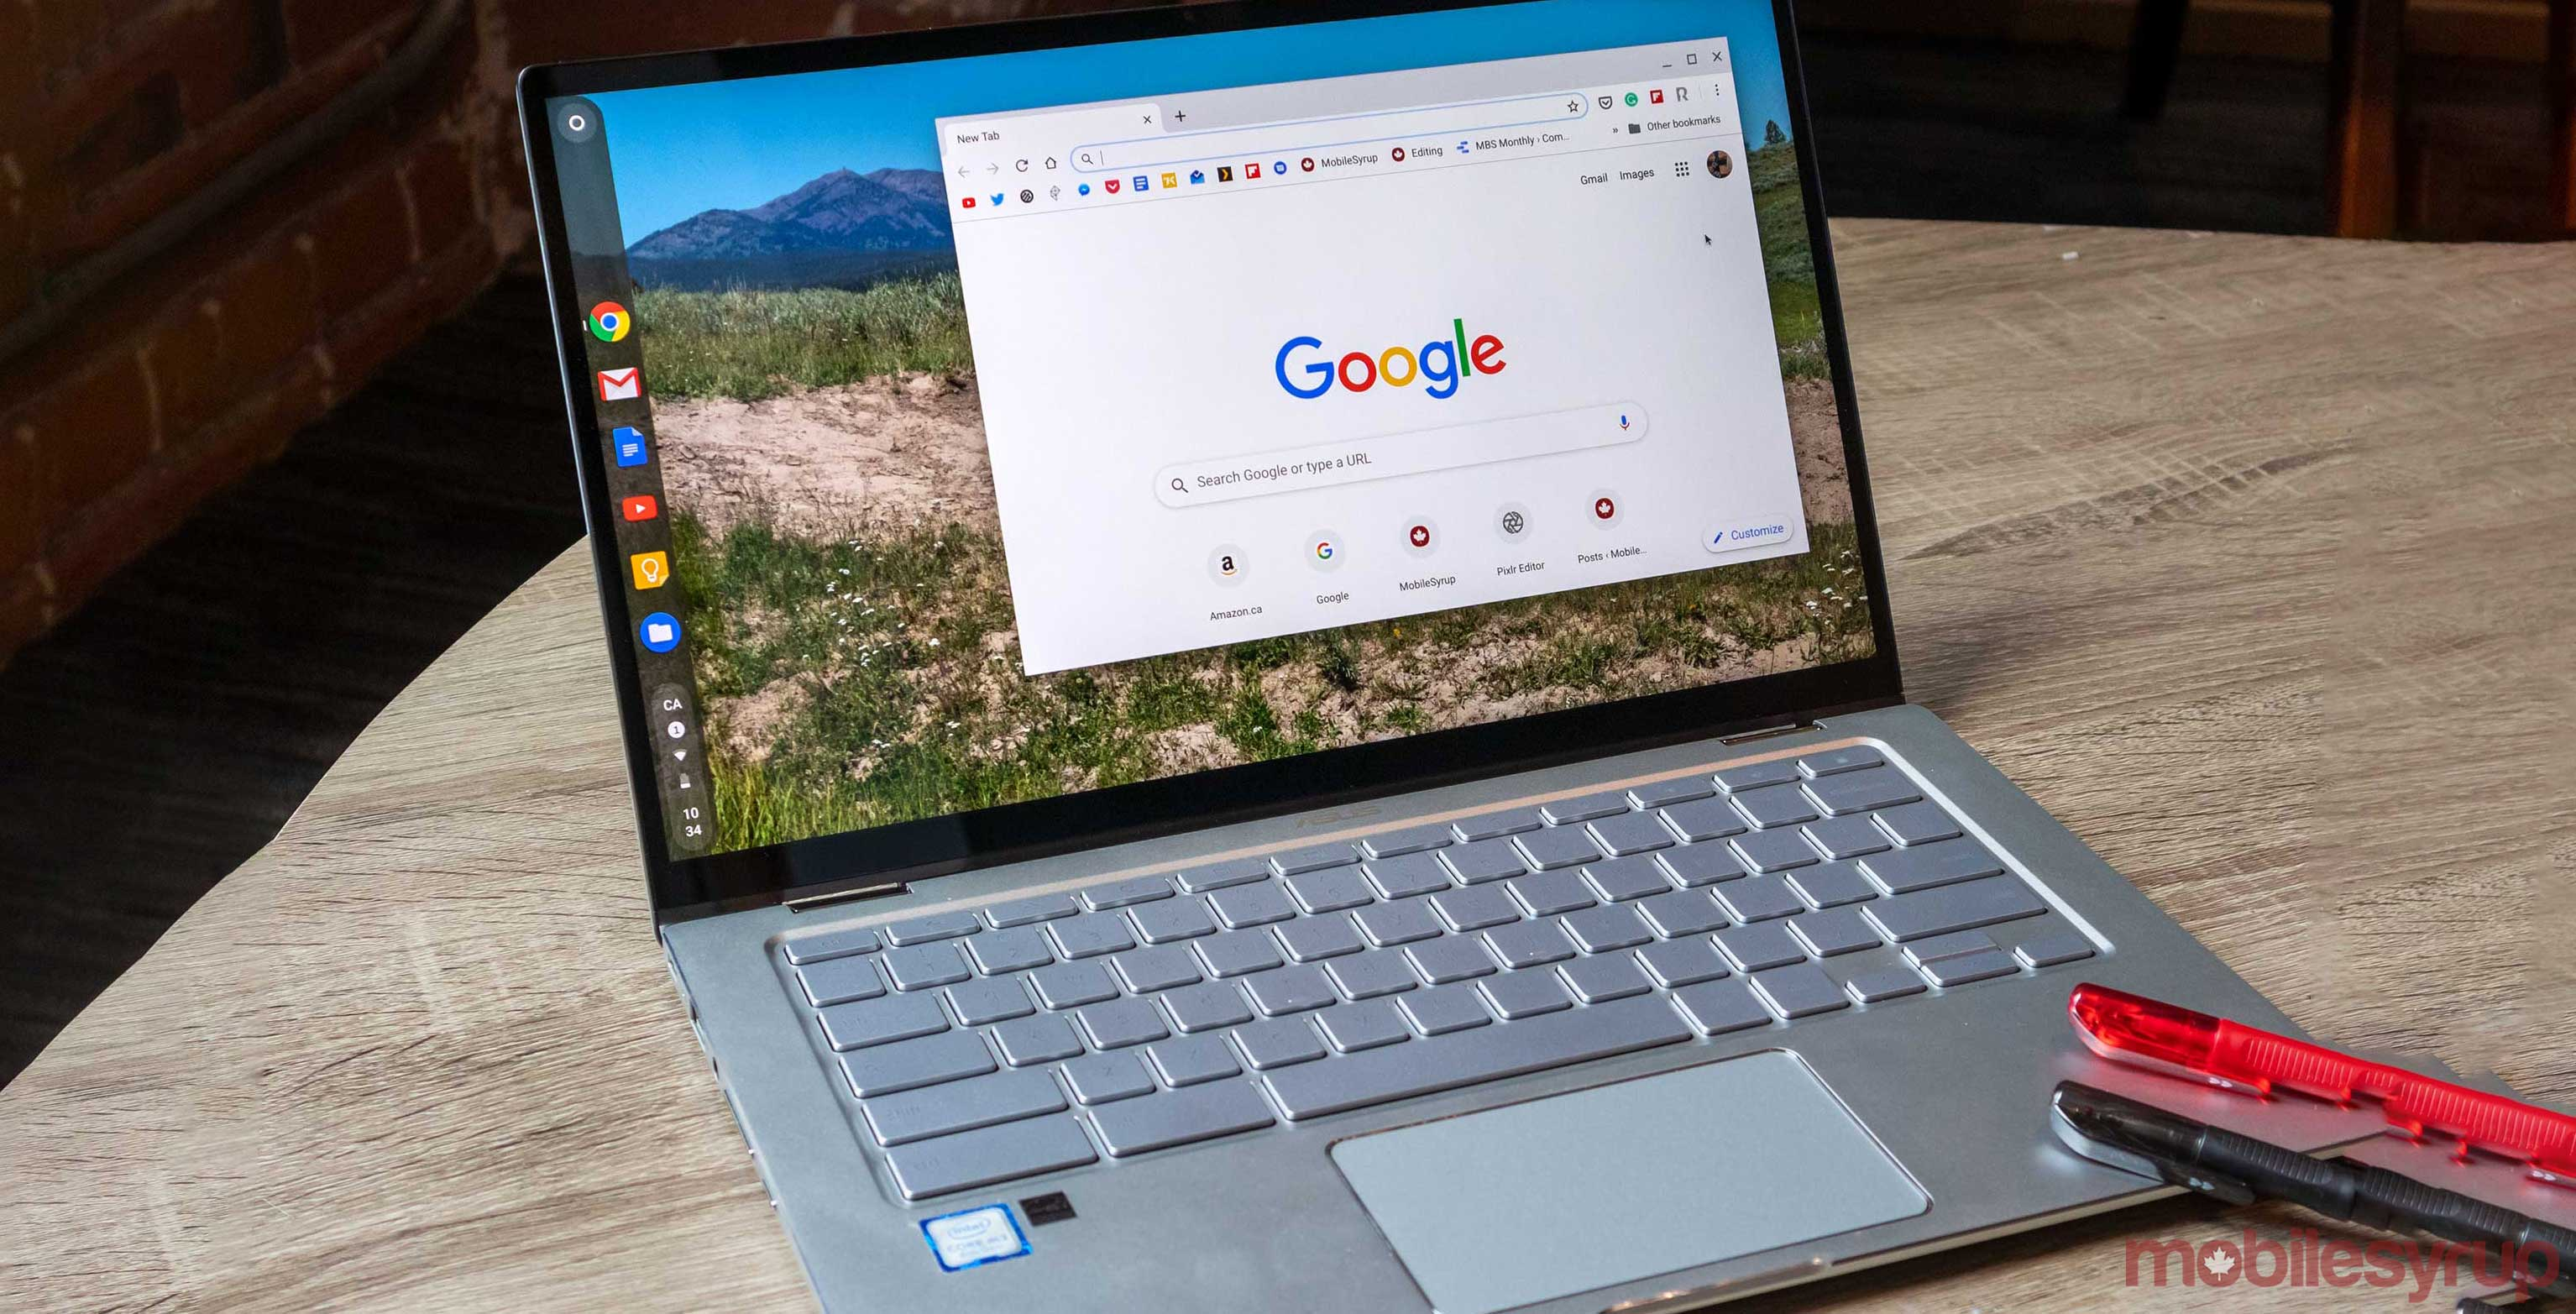 Google reportedly working to bring official Steam support to Chromebooks